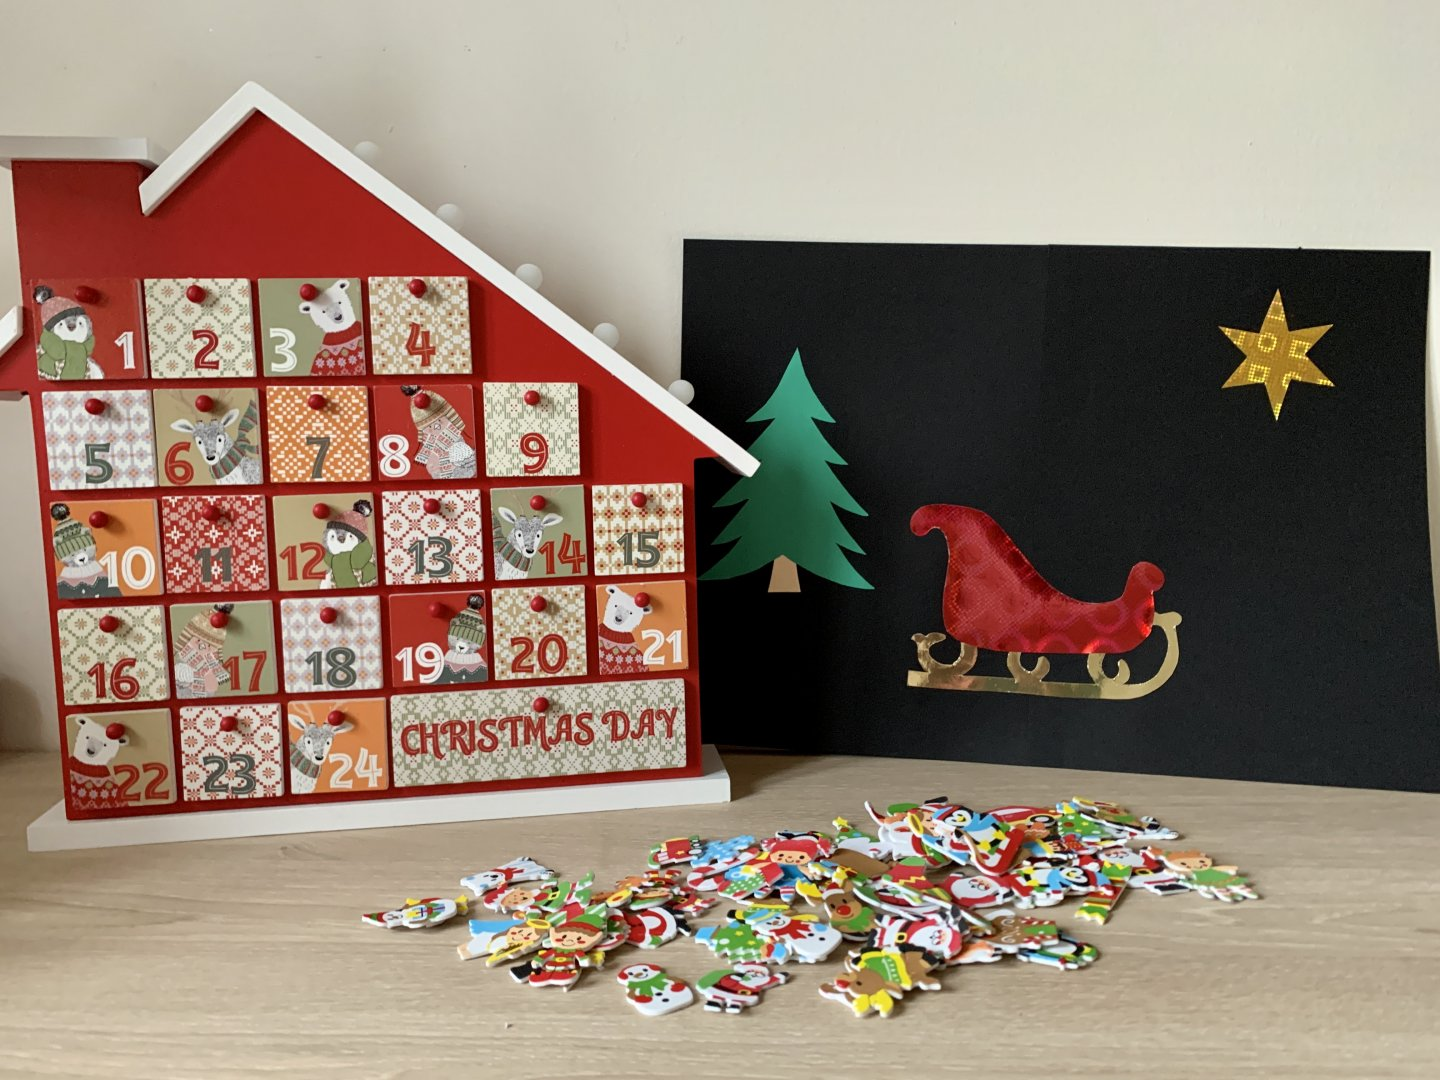 A wooden advent house stands next to a homemade A3 picture made with a black card background, sparkly red sleigh, gold star and green Christmas tree. A pile of Christmas-themed stickers are spread out on the desk in the foreground.